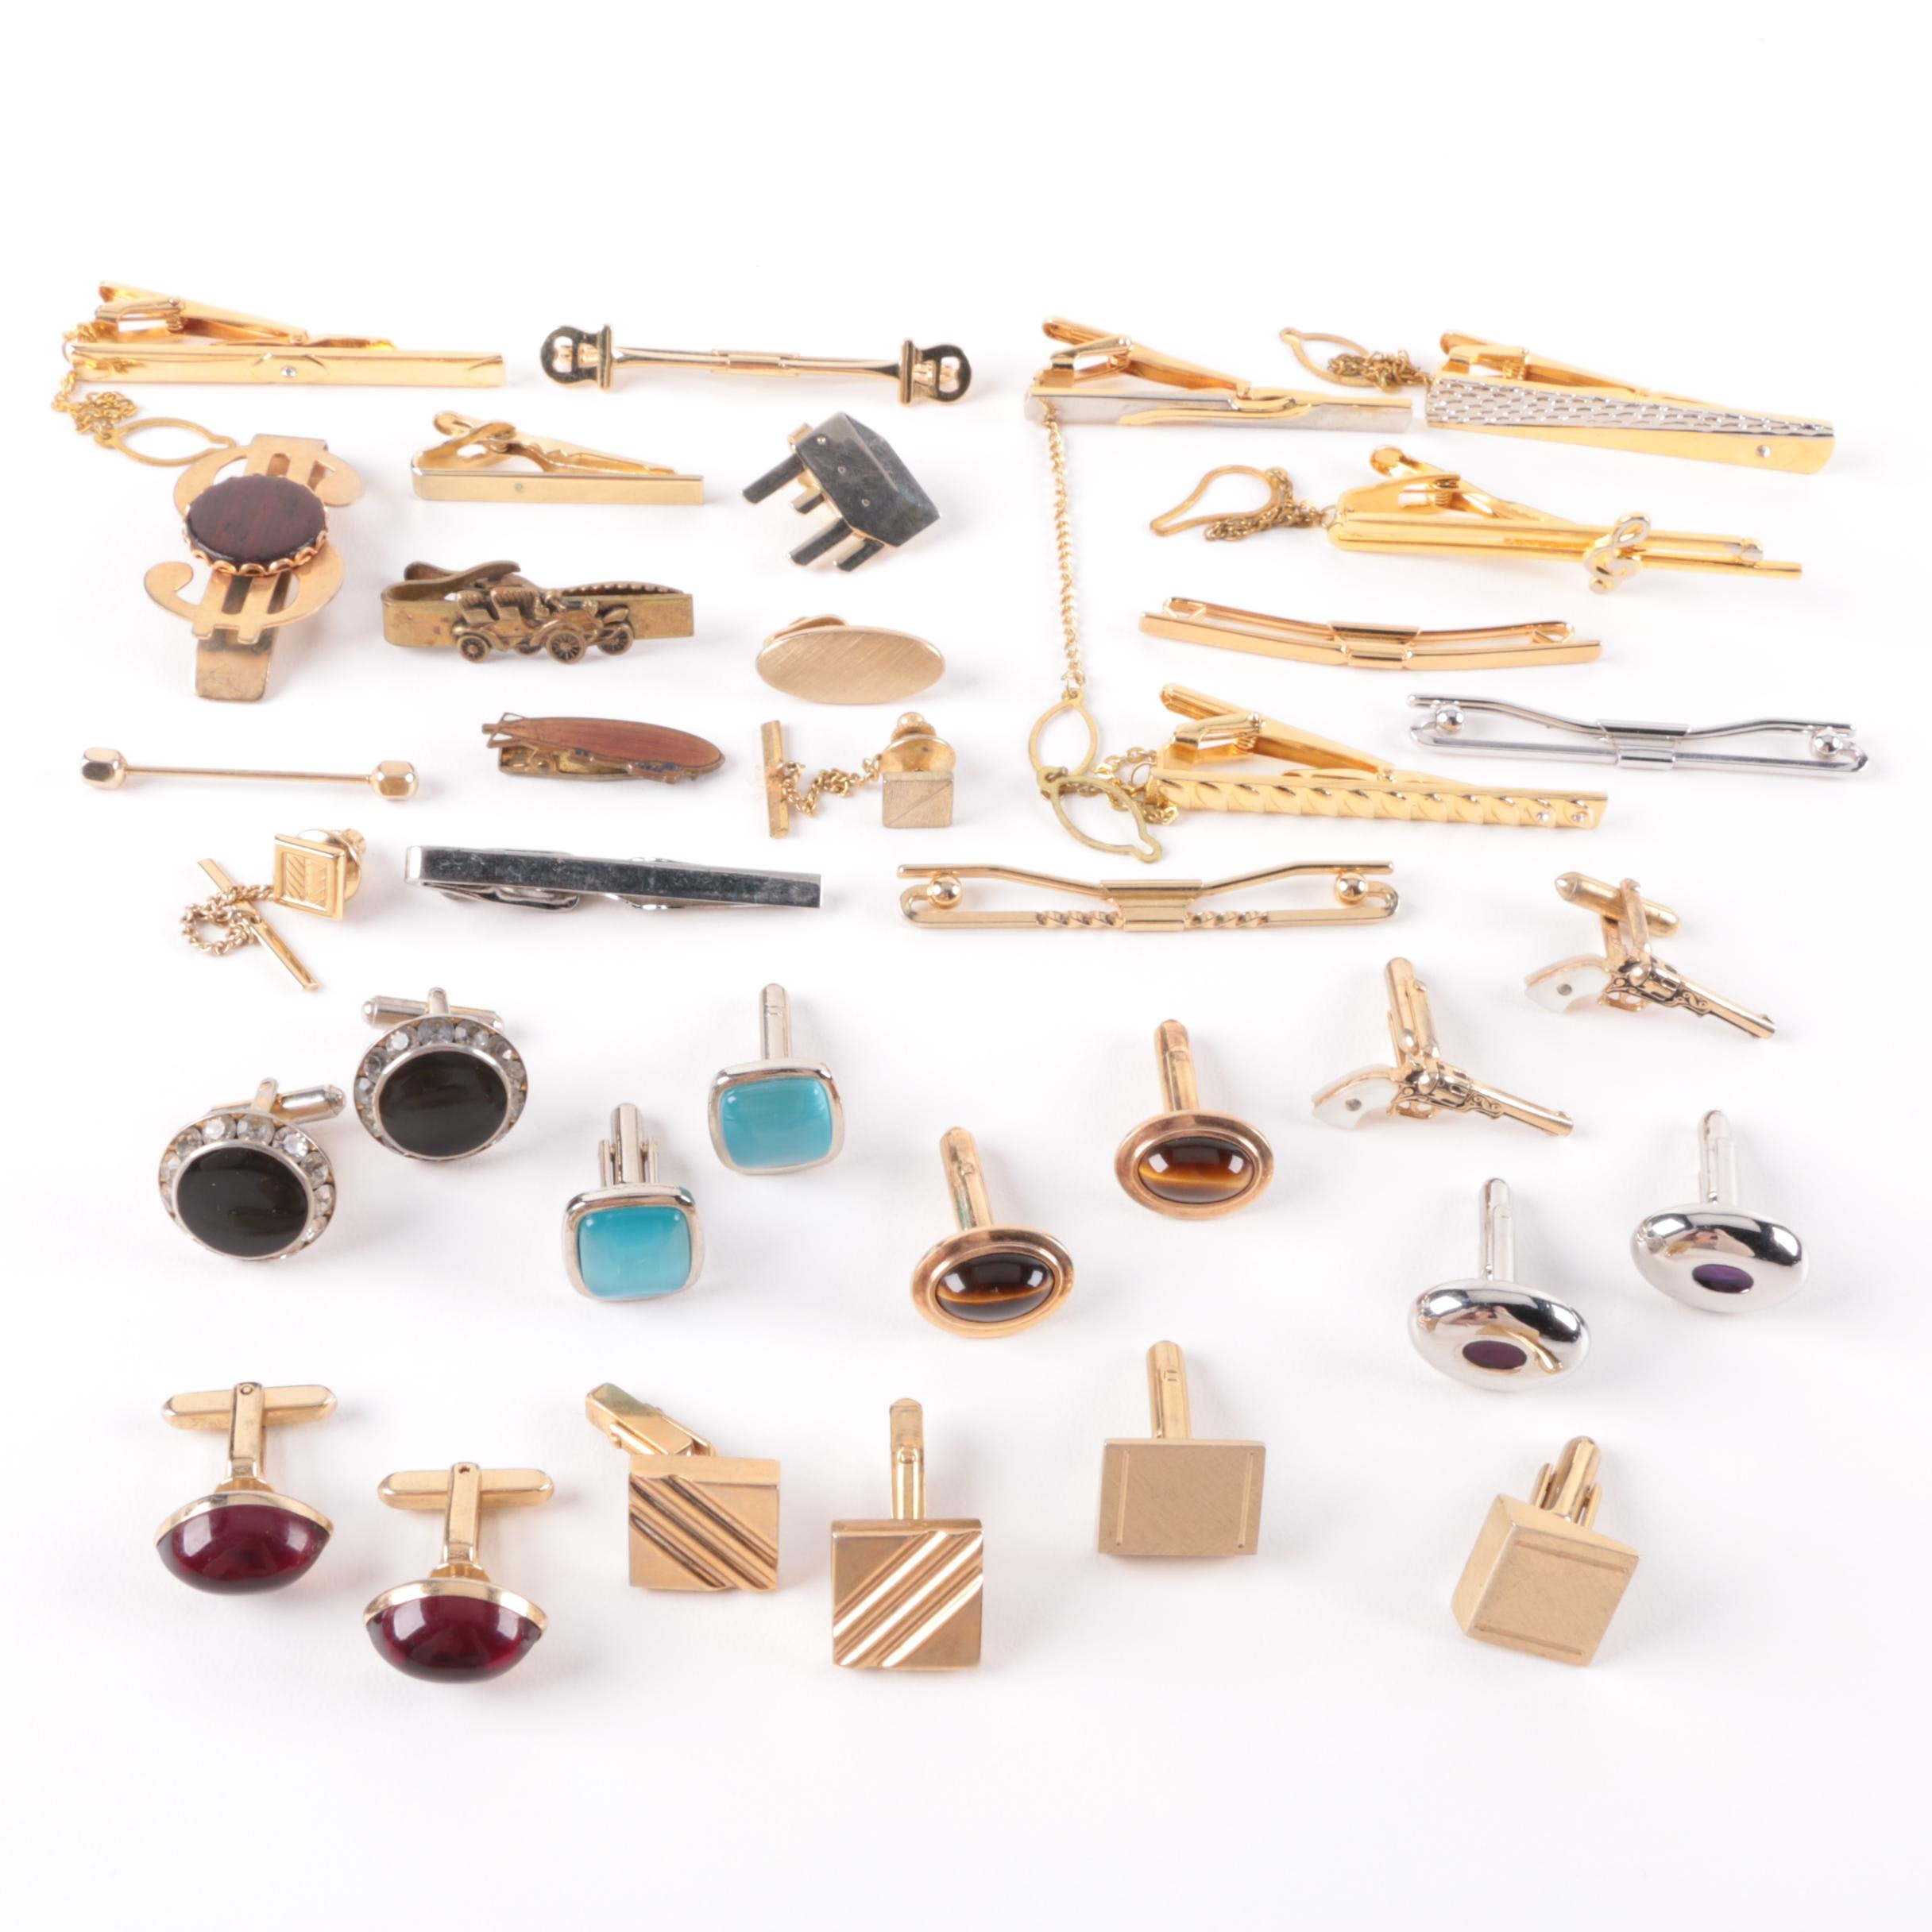 Cufflink and Tie Clip Selection Featuring Mother of Pearl and Tiger's Eye